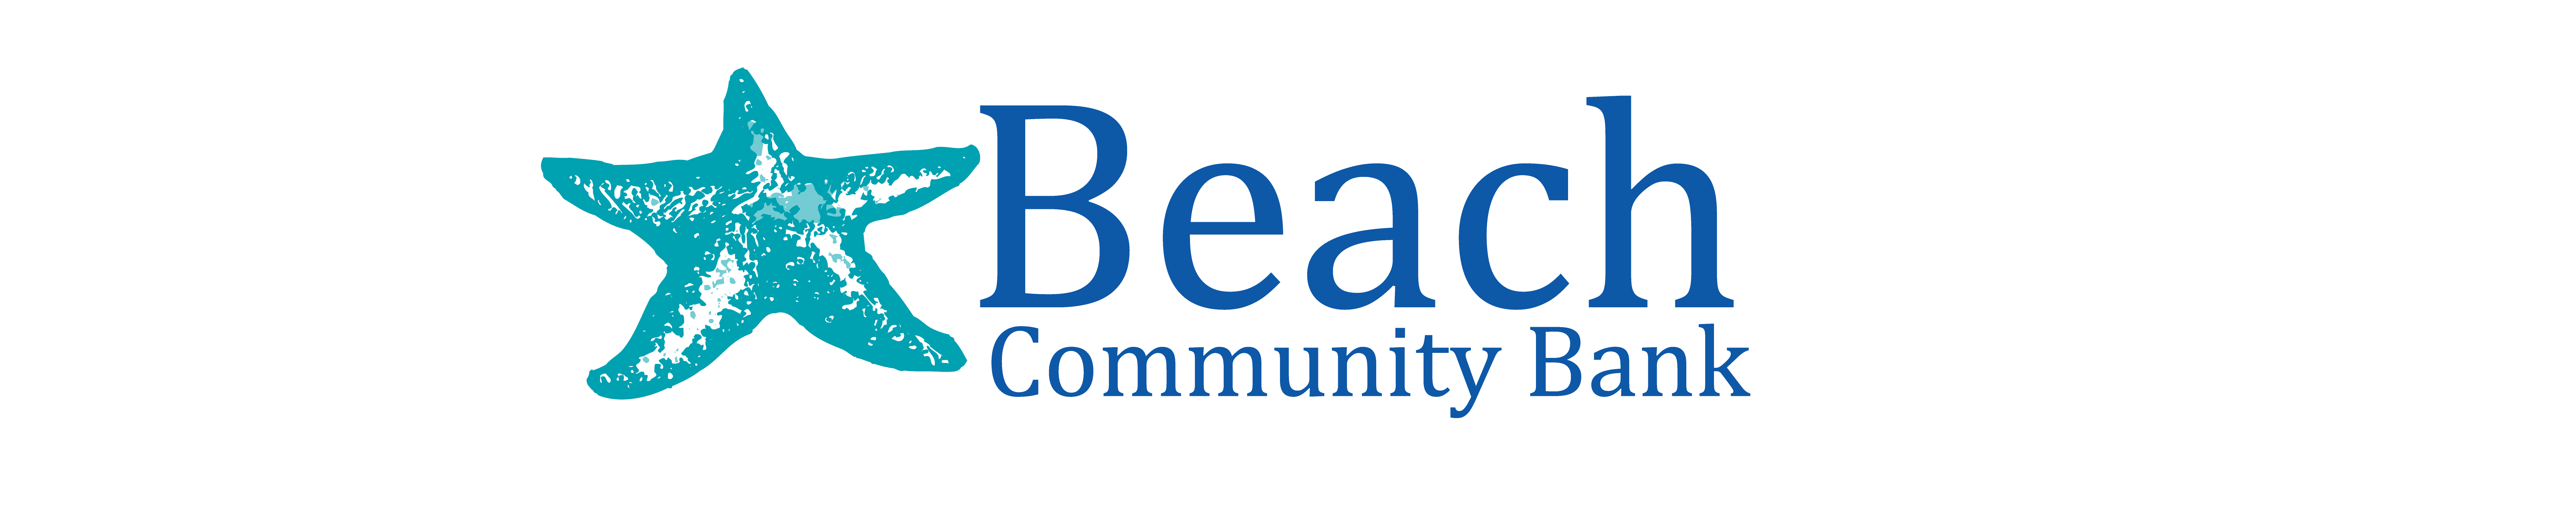 Beach Community Bank